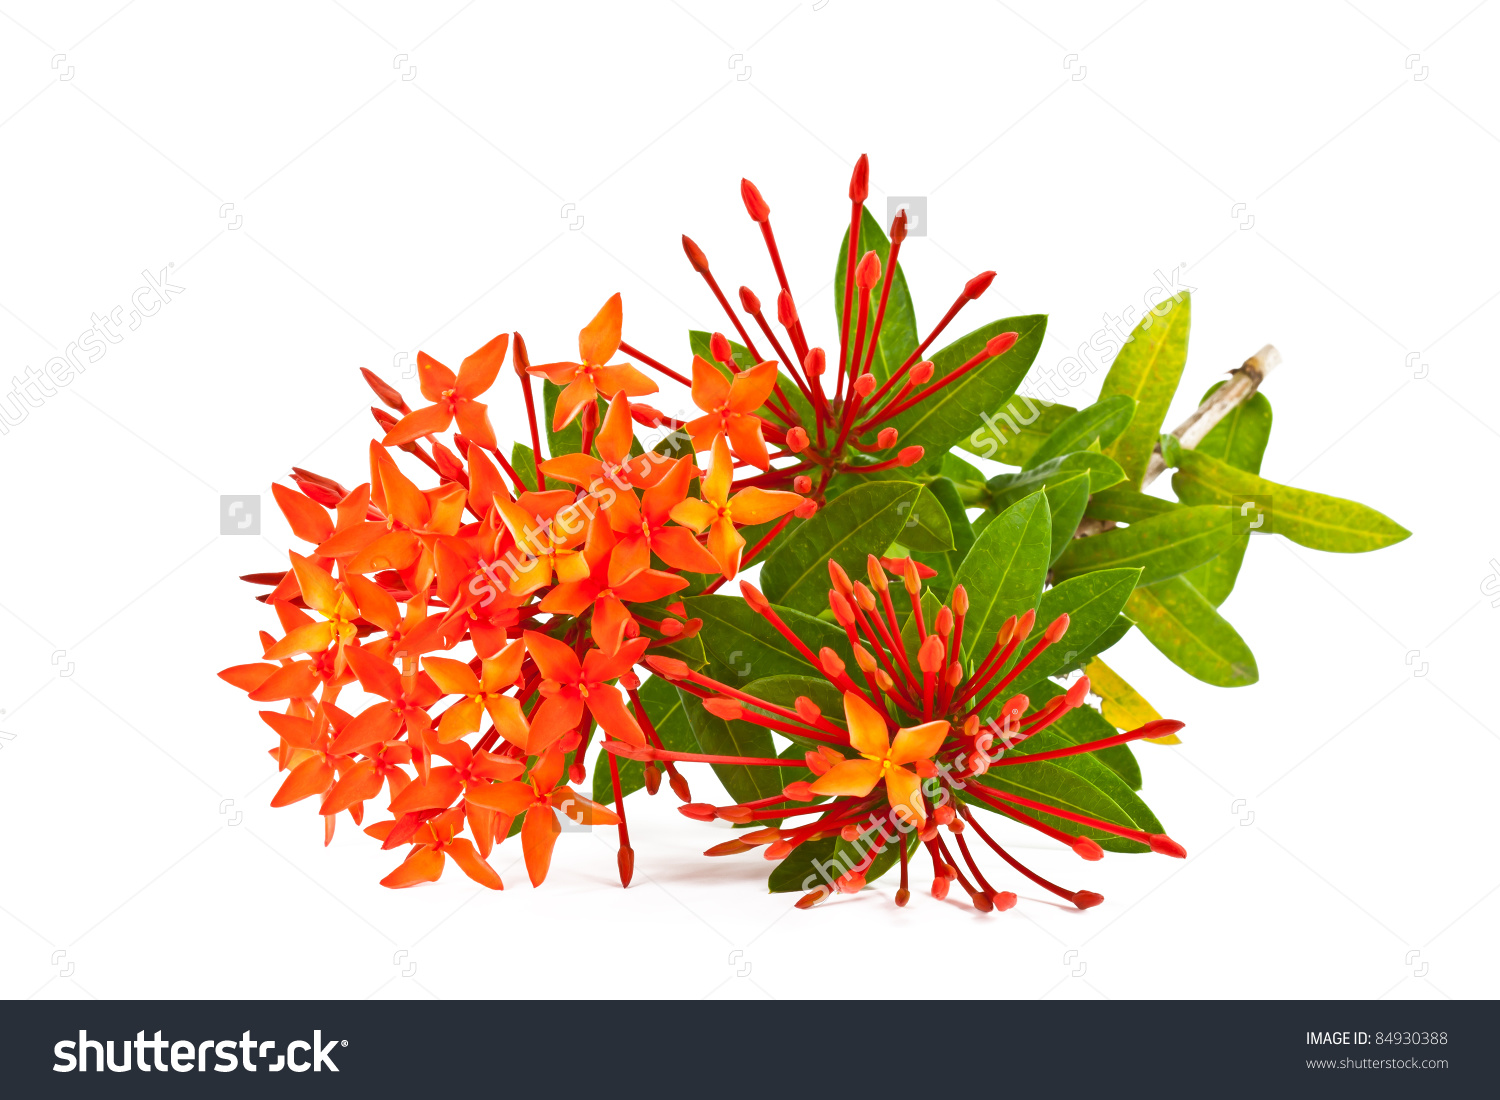 Ixora Flower On White Background Stock Photo 84930388.